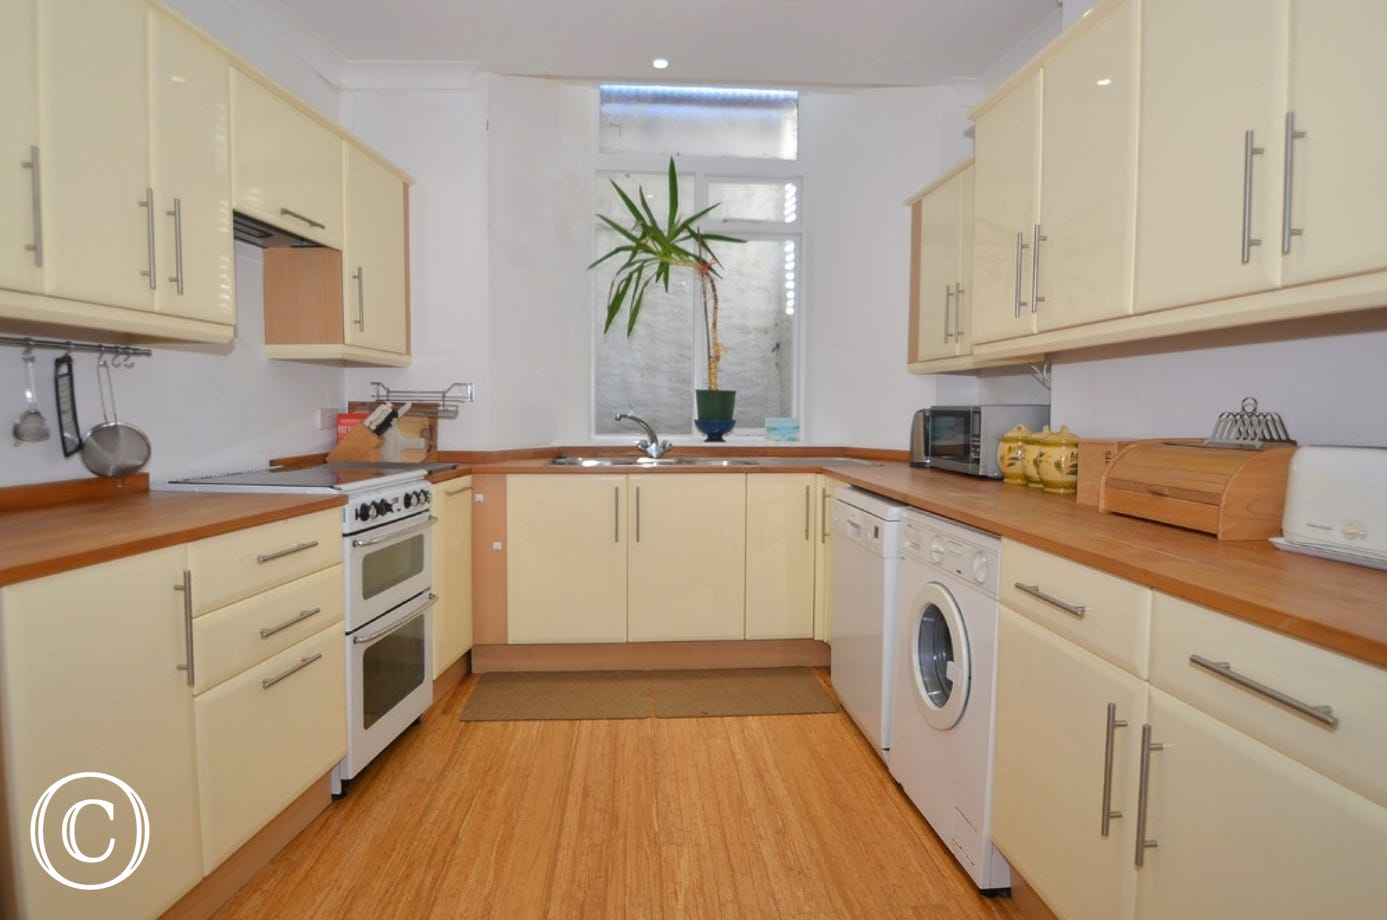 Kitchen: Gas cooker with a 4 ring hob, dishwasher, fridge/freezer, washing machine, kettle and toaster.